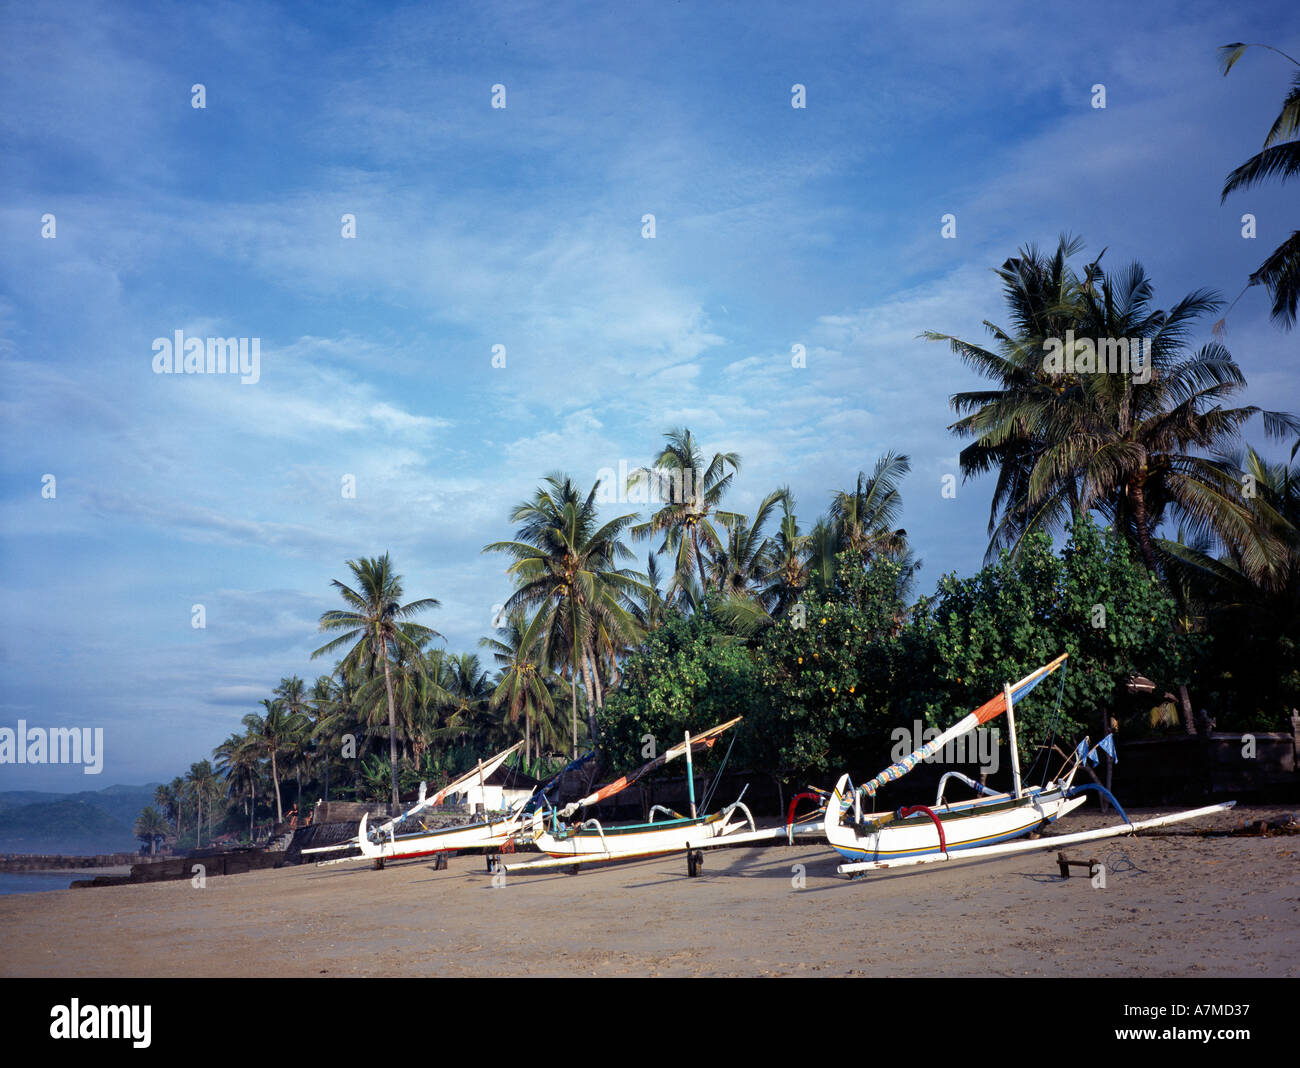 Indonesia Bali Candidasa fishing boats on the beach eroded by mining dead coral for construction - Stock Image